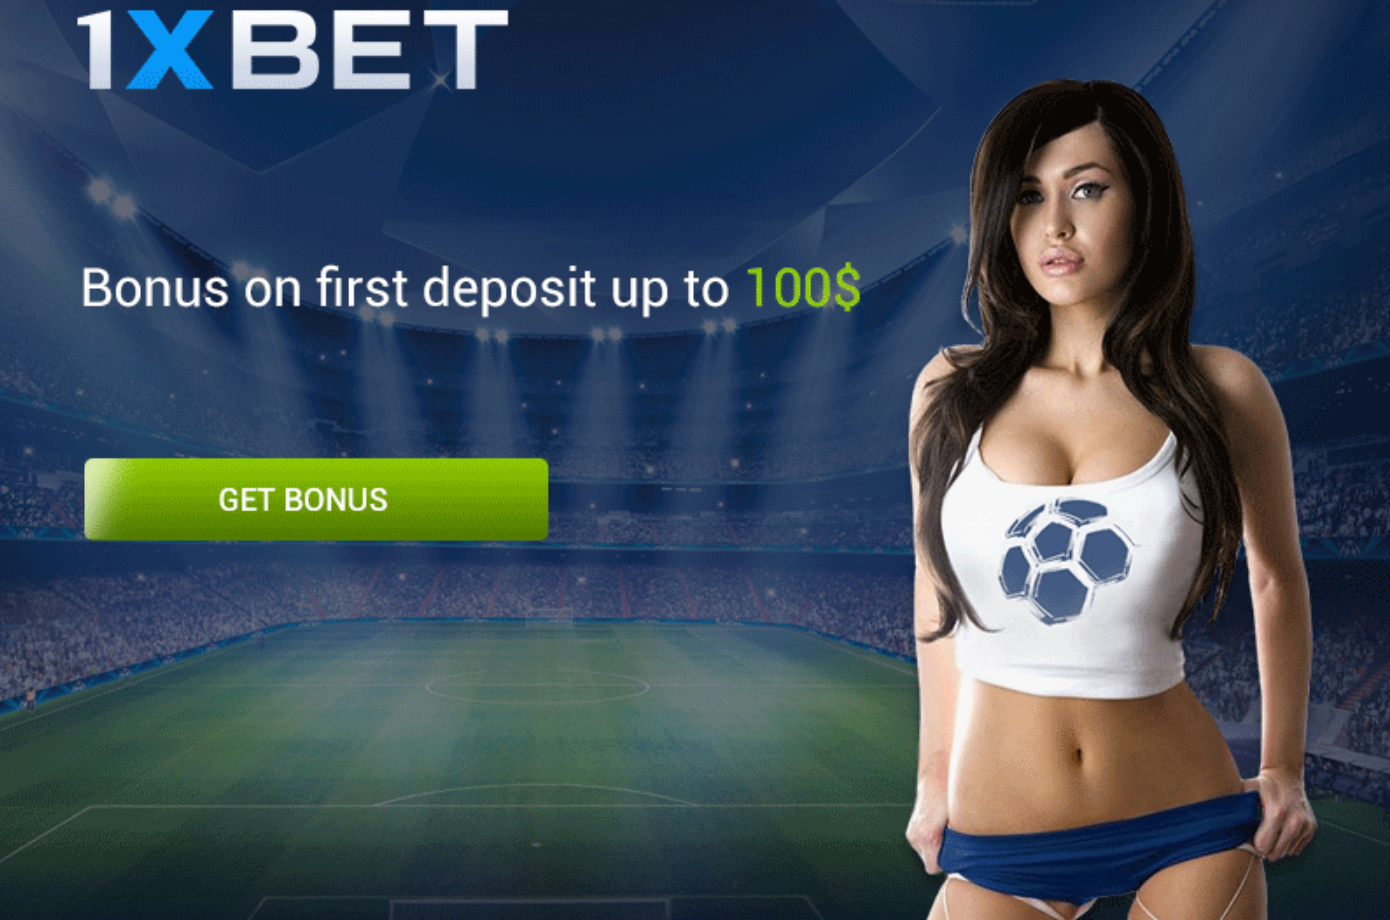 Understanding the 1xBet Bonus Conditions